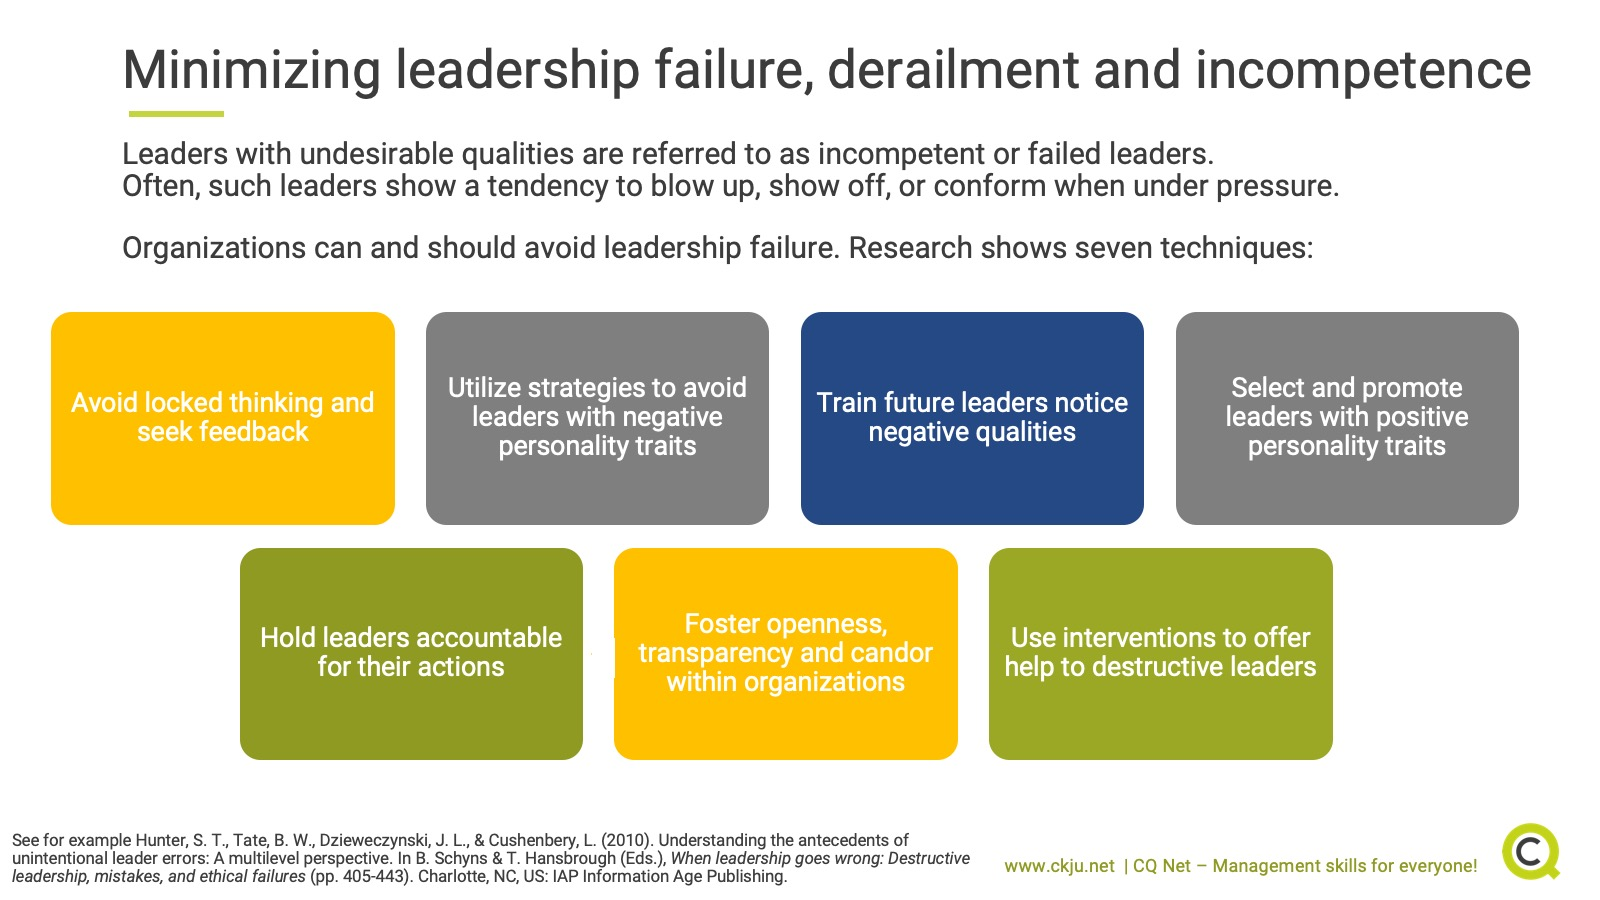 Minimizing leadership failure, derailment and incompetence